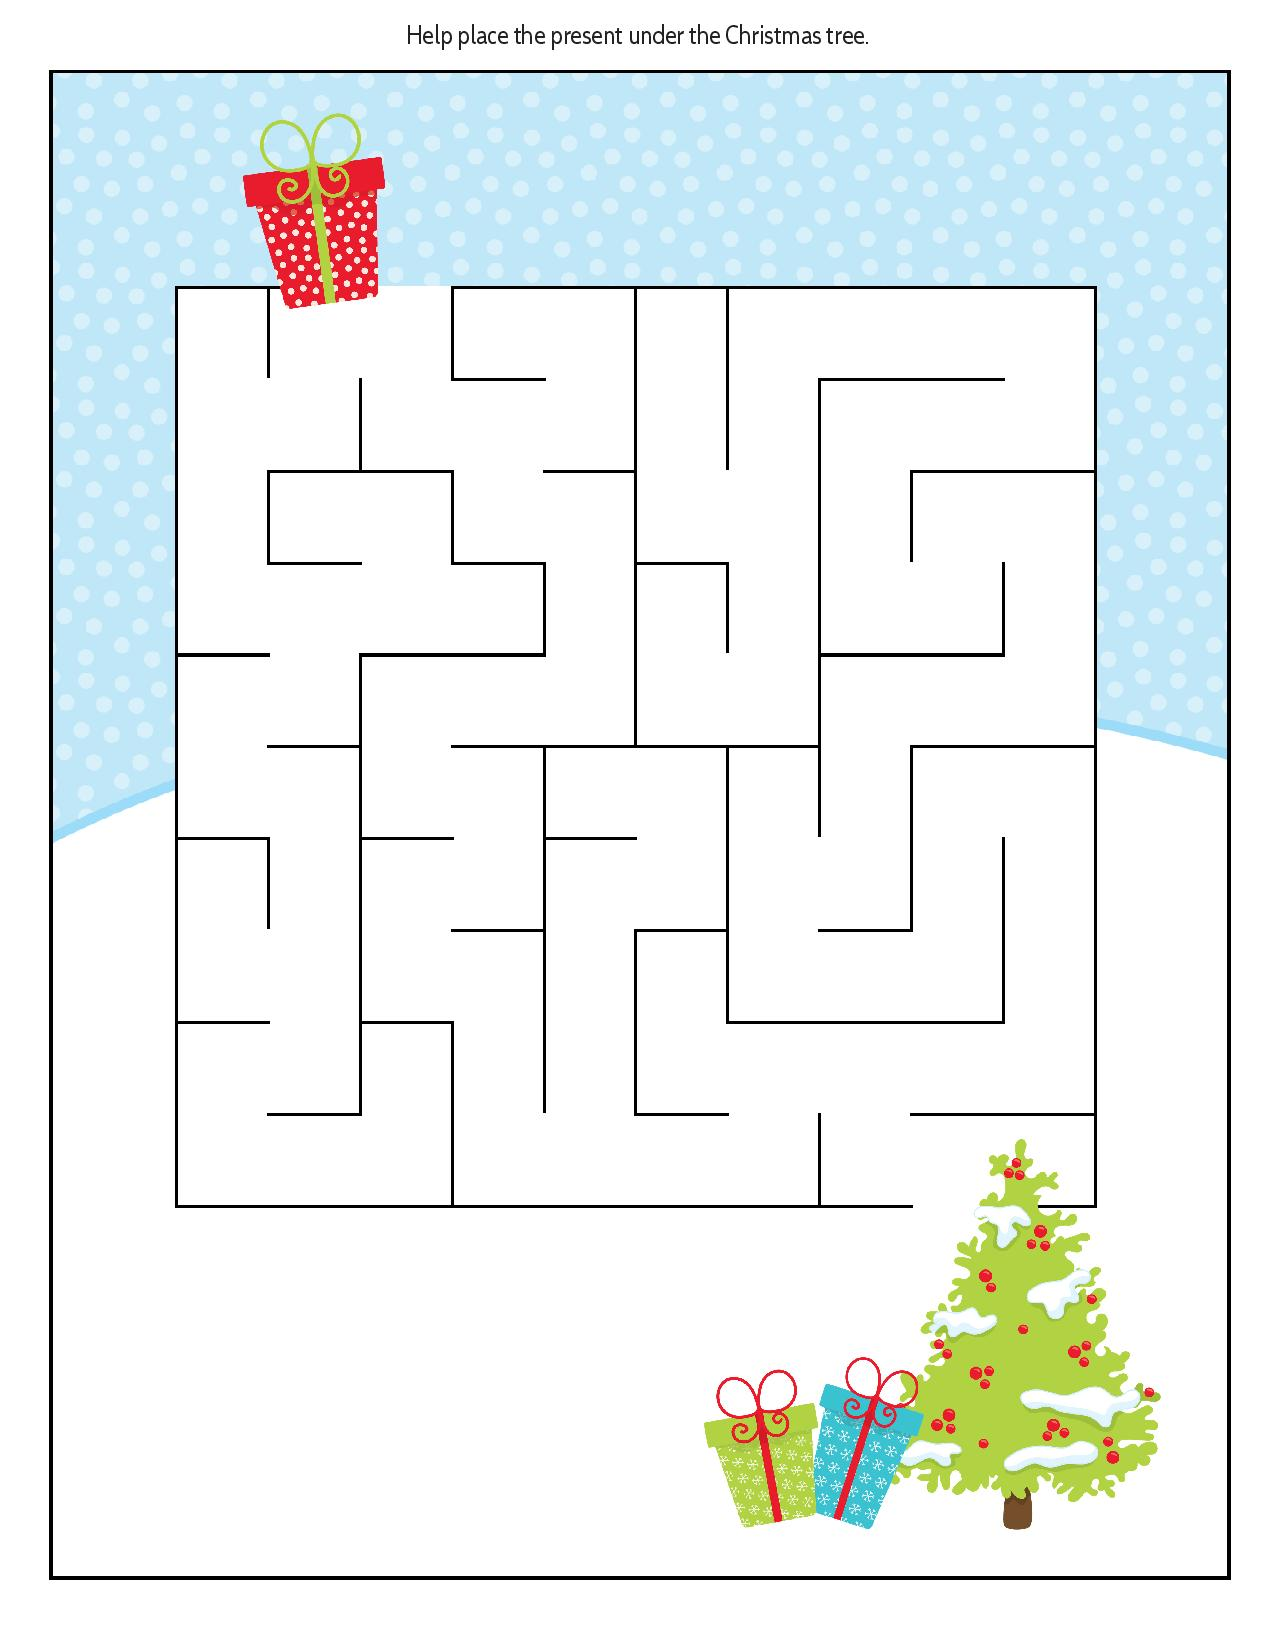 picture regarding Free Printable Christmas Puzzles titled Free of charge Insightful Printable Xmas Puzzle Pack - Genuine And